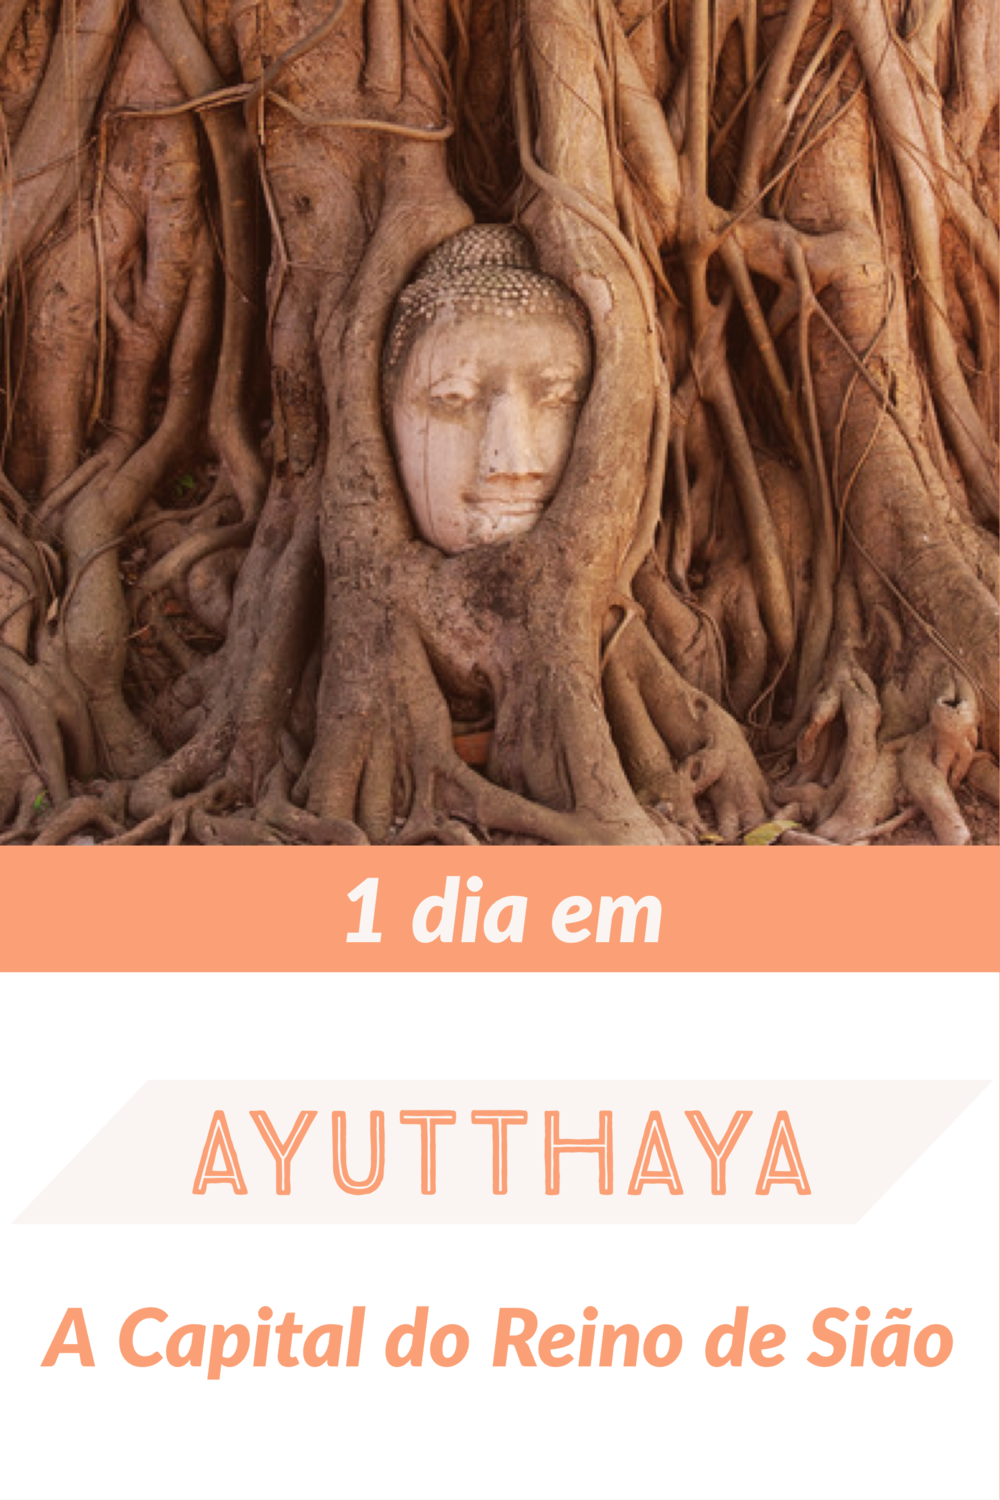 1 dia em Ayutthaya, A Capital do Reino de Sião